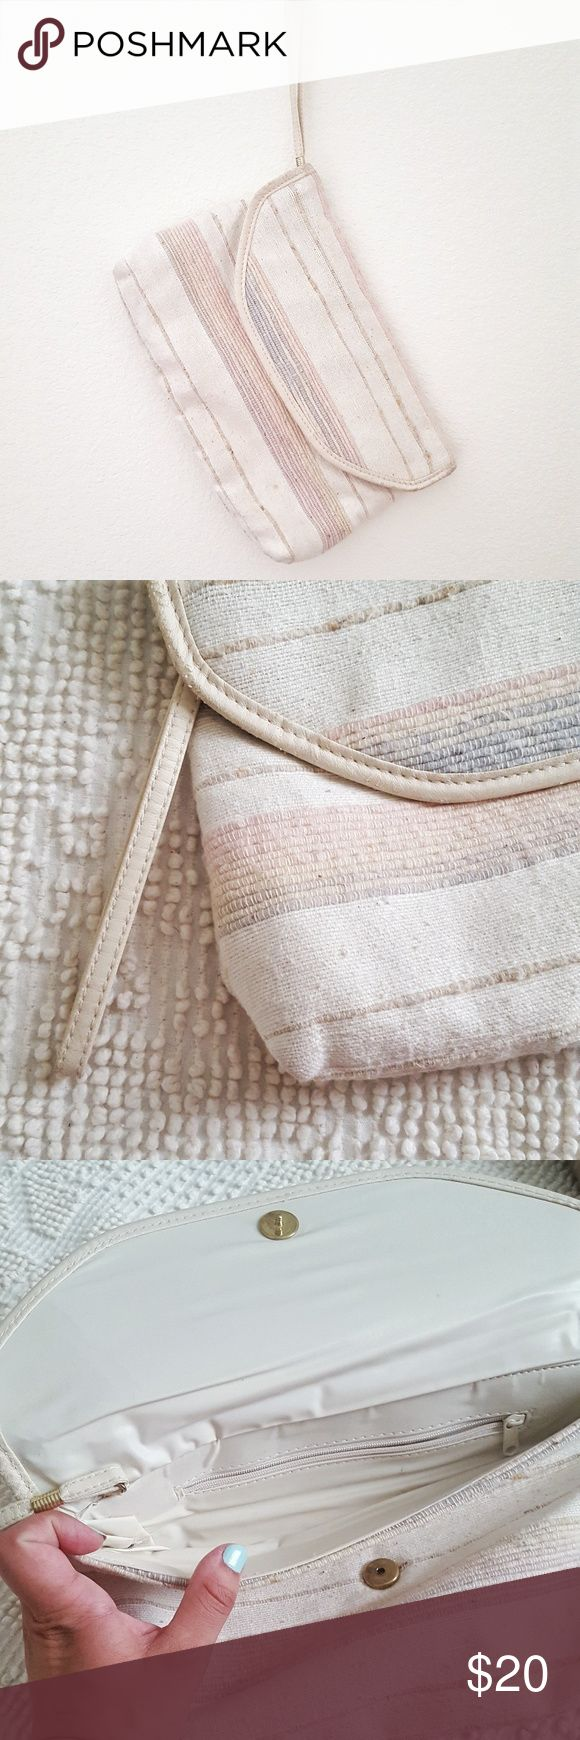 """Vintage Boho Woven Pastel Neutral Clutch Vintage clutch with fold over snap closure, interior zipper pocket, loop handle, and vinyl lining. Neutral pastel cream, tan, blush, blue with great texture. Approx. 12""""w, 8""""h, 2""""d (at base). Very good vintage condition. Vintage Bags Clutches & Wristlets"""